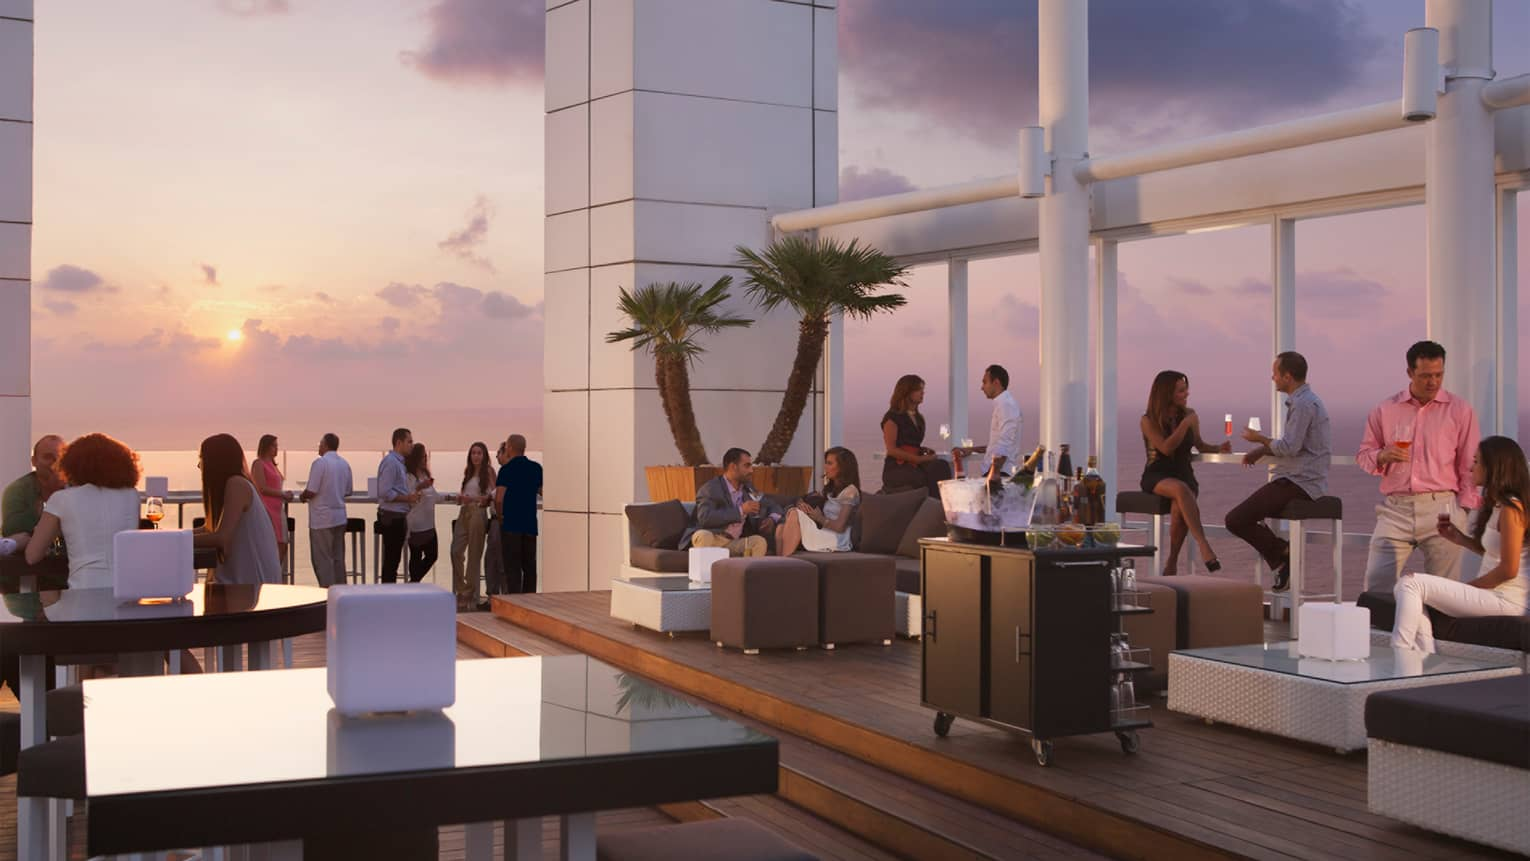 Crowds mingle on rooftop patio on wicker sofas and stand alongside rail as sun sets in background